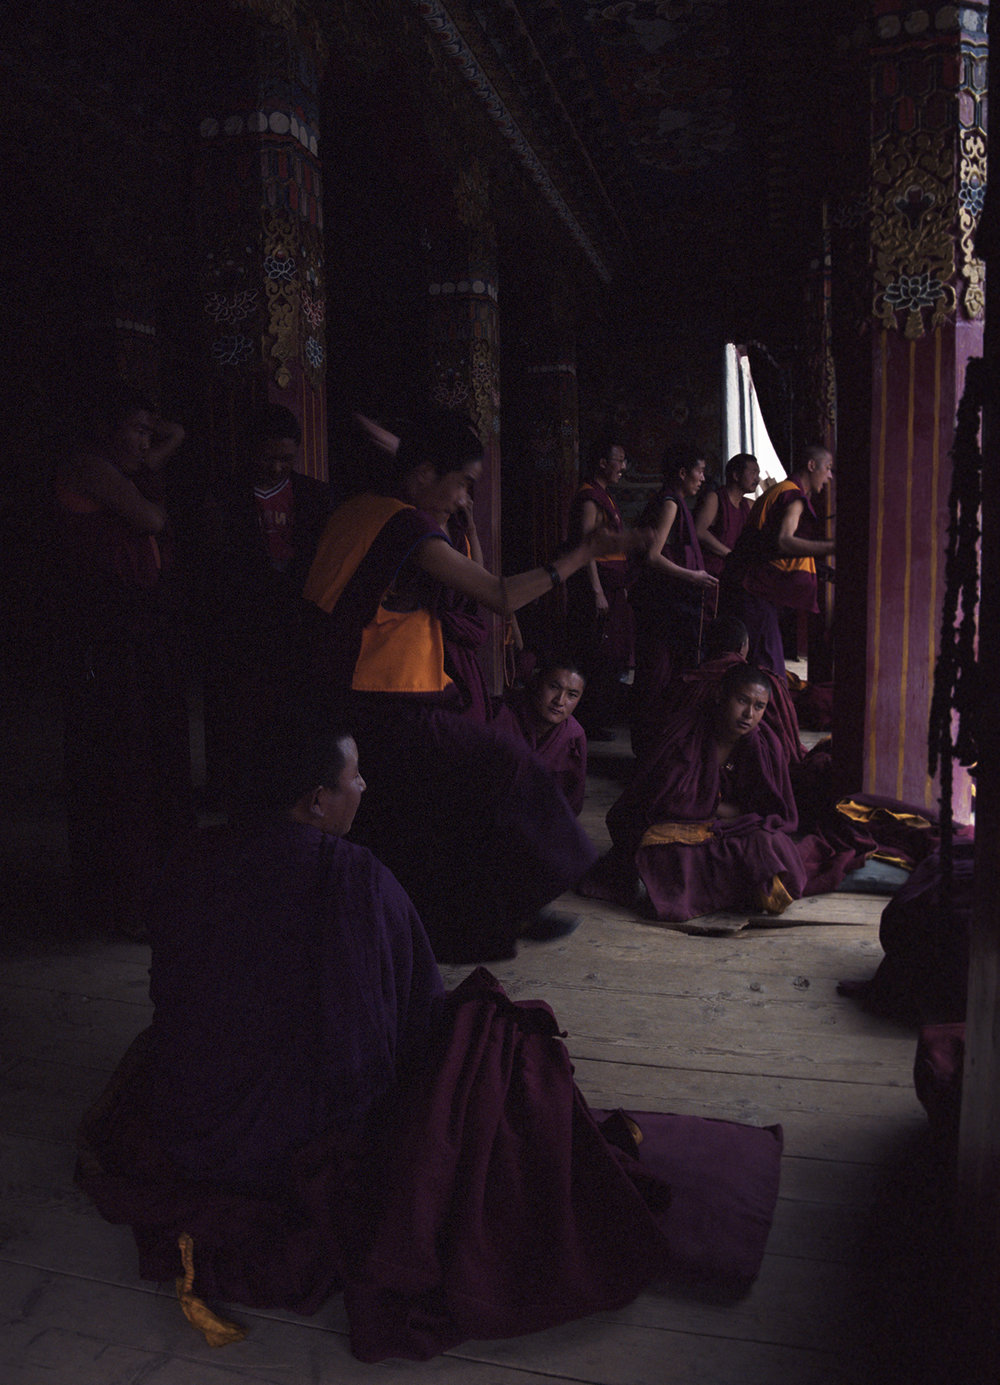 2010, near Kandze - discussing monks. This practice is n important part of their training.